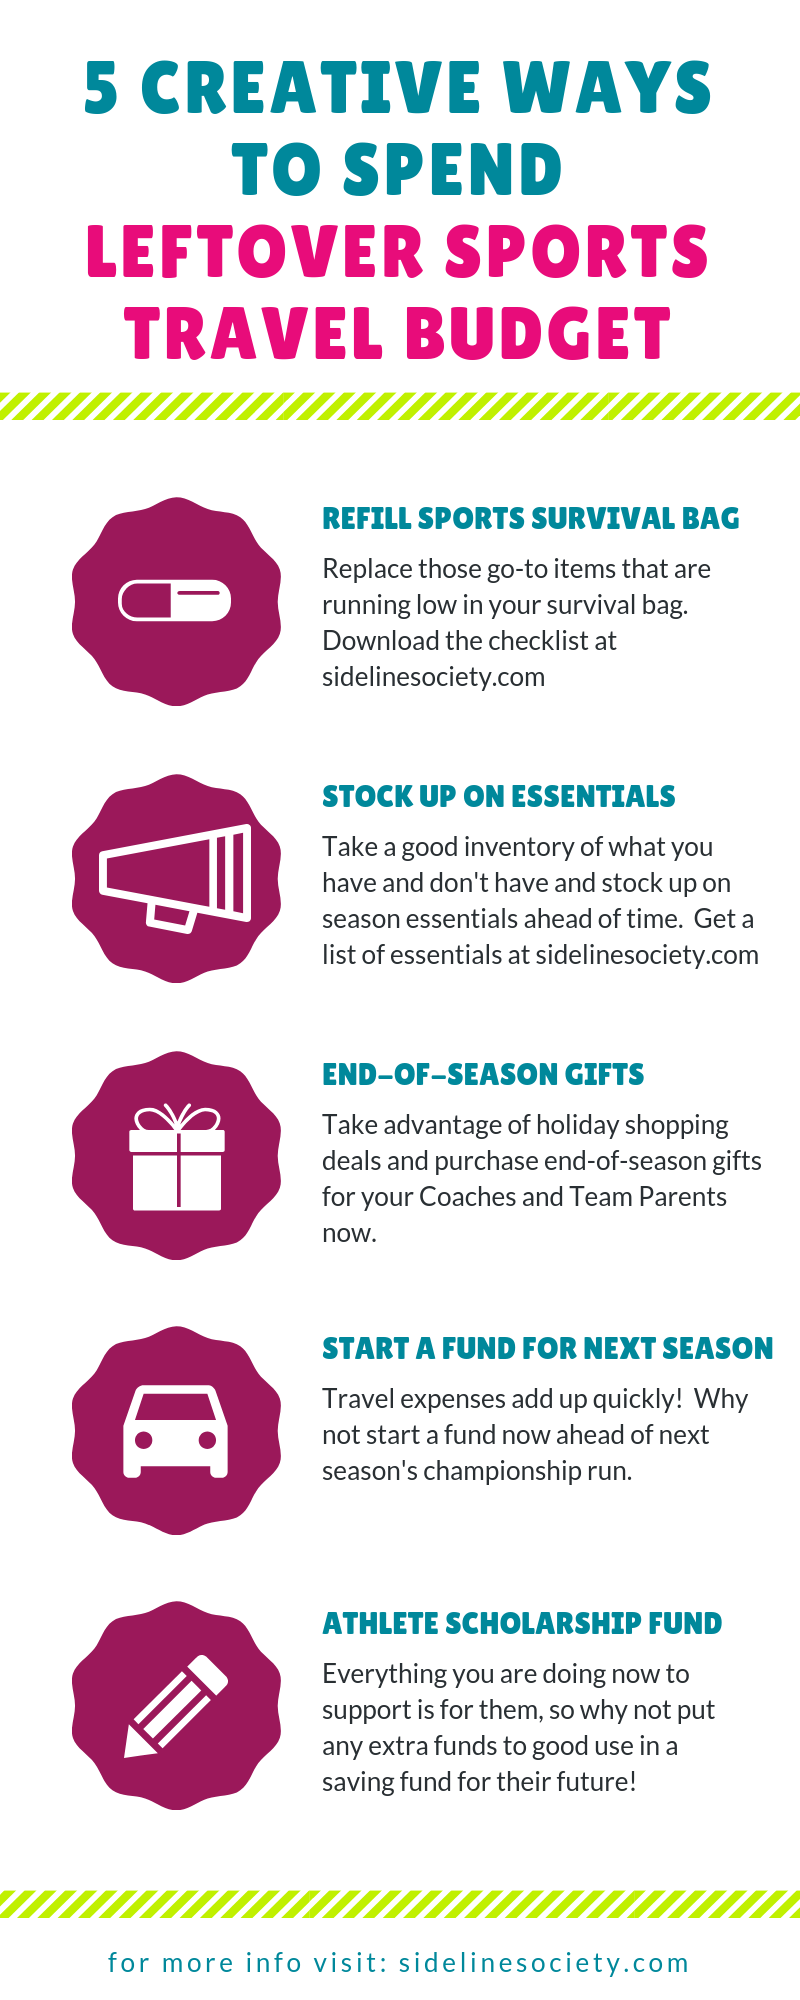 5 Creative Ways to Spend Leftover Sports Travel Budget .png